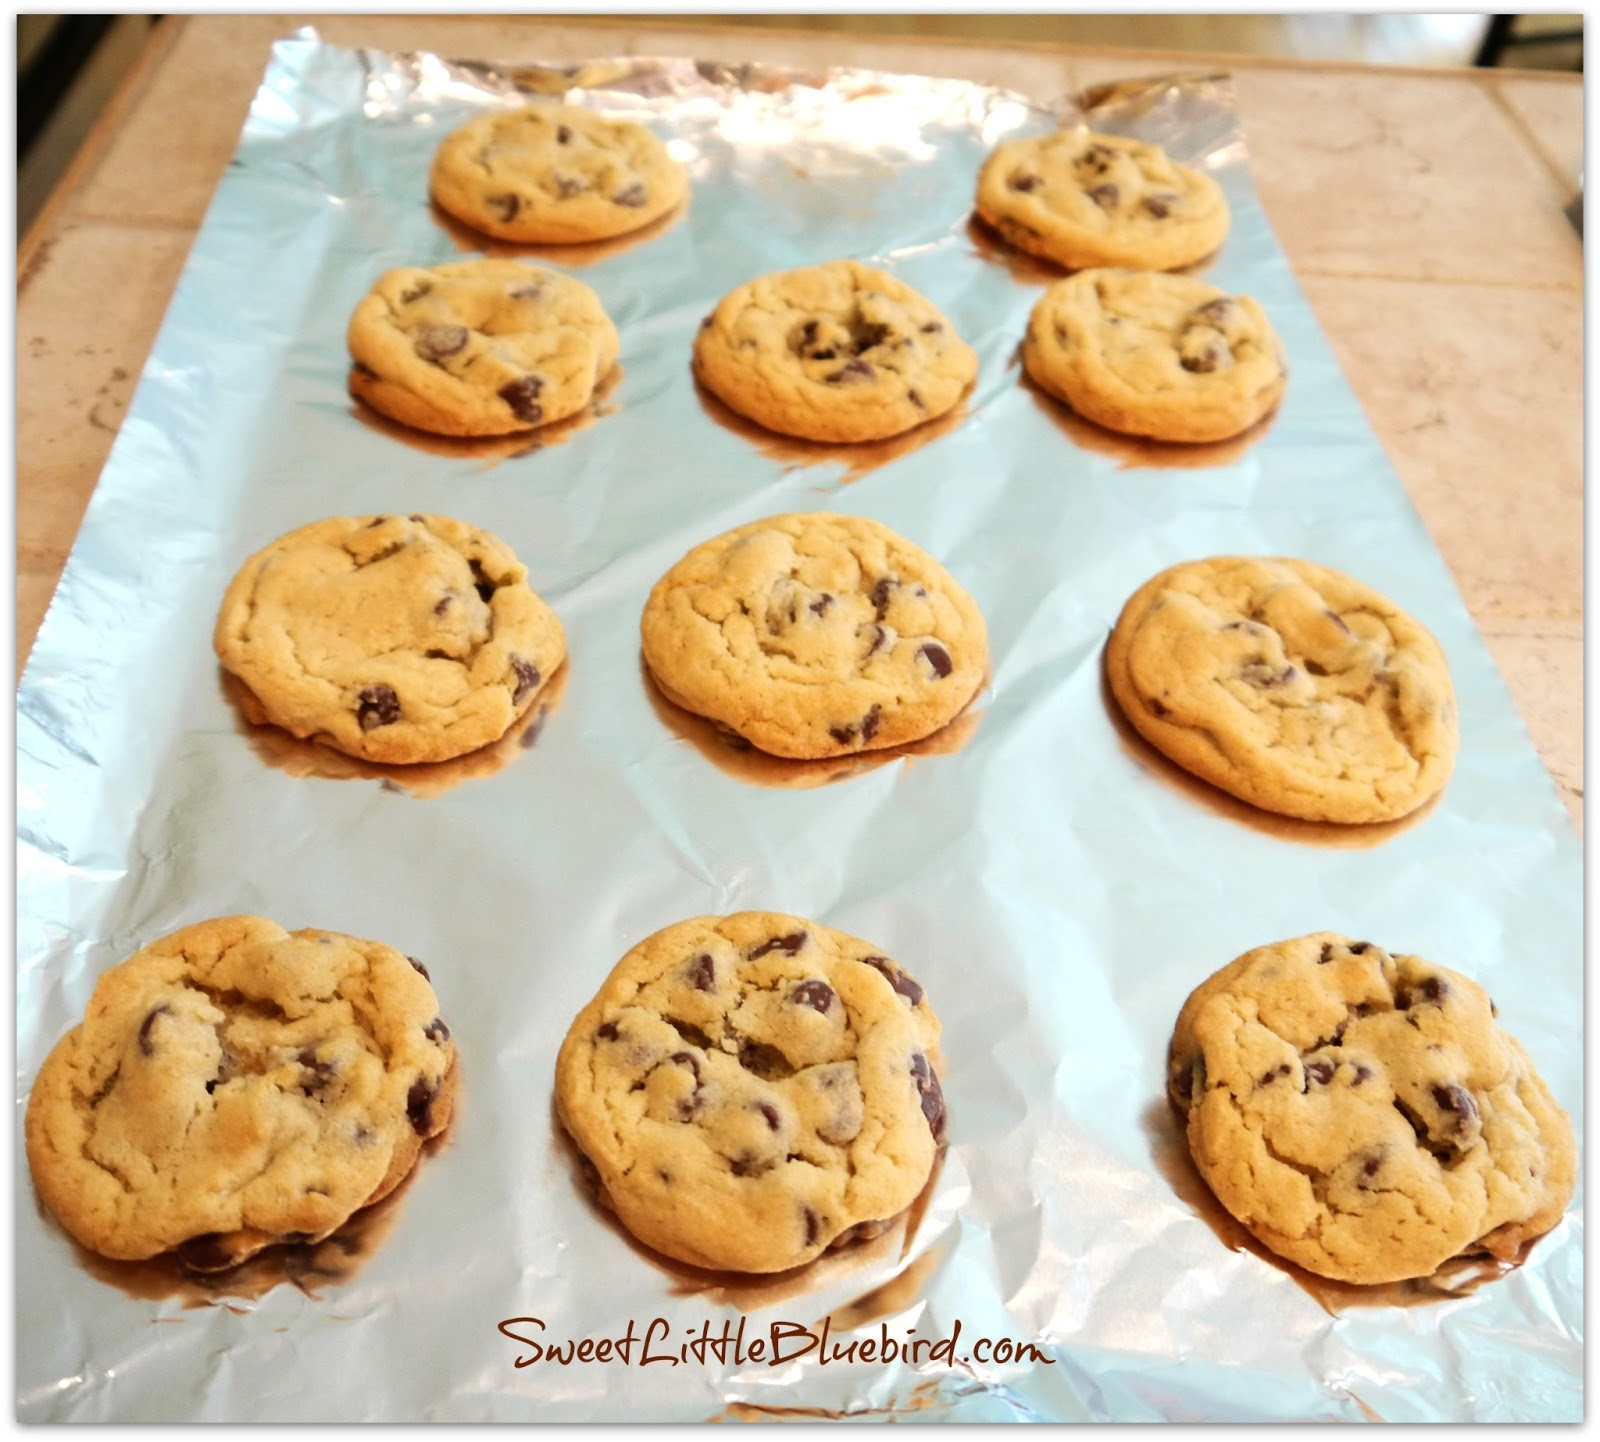 Sweet Little Bluebird: Perfect Chocolate Chip Cookies